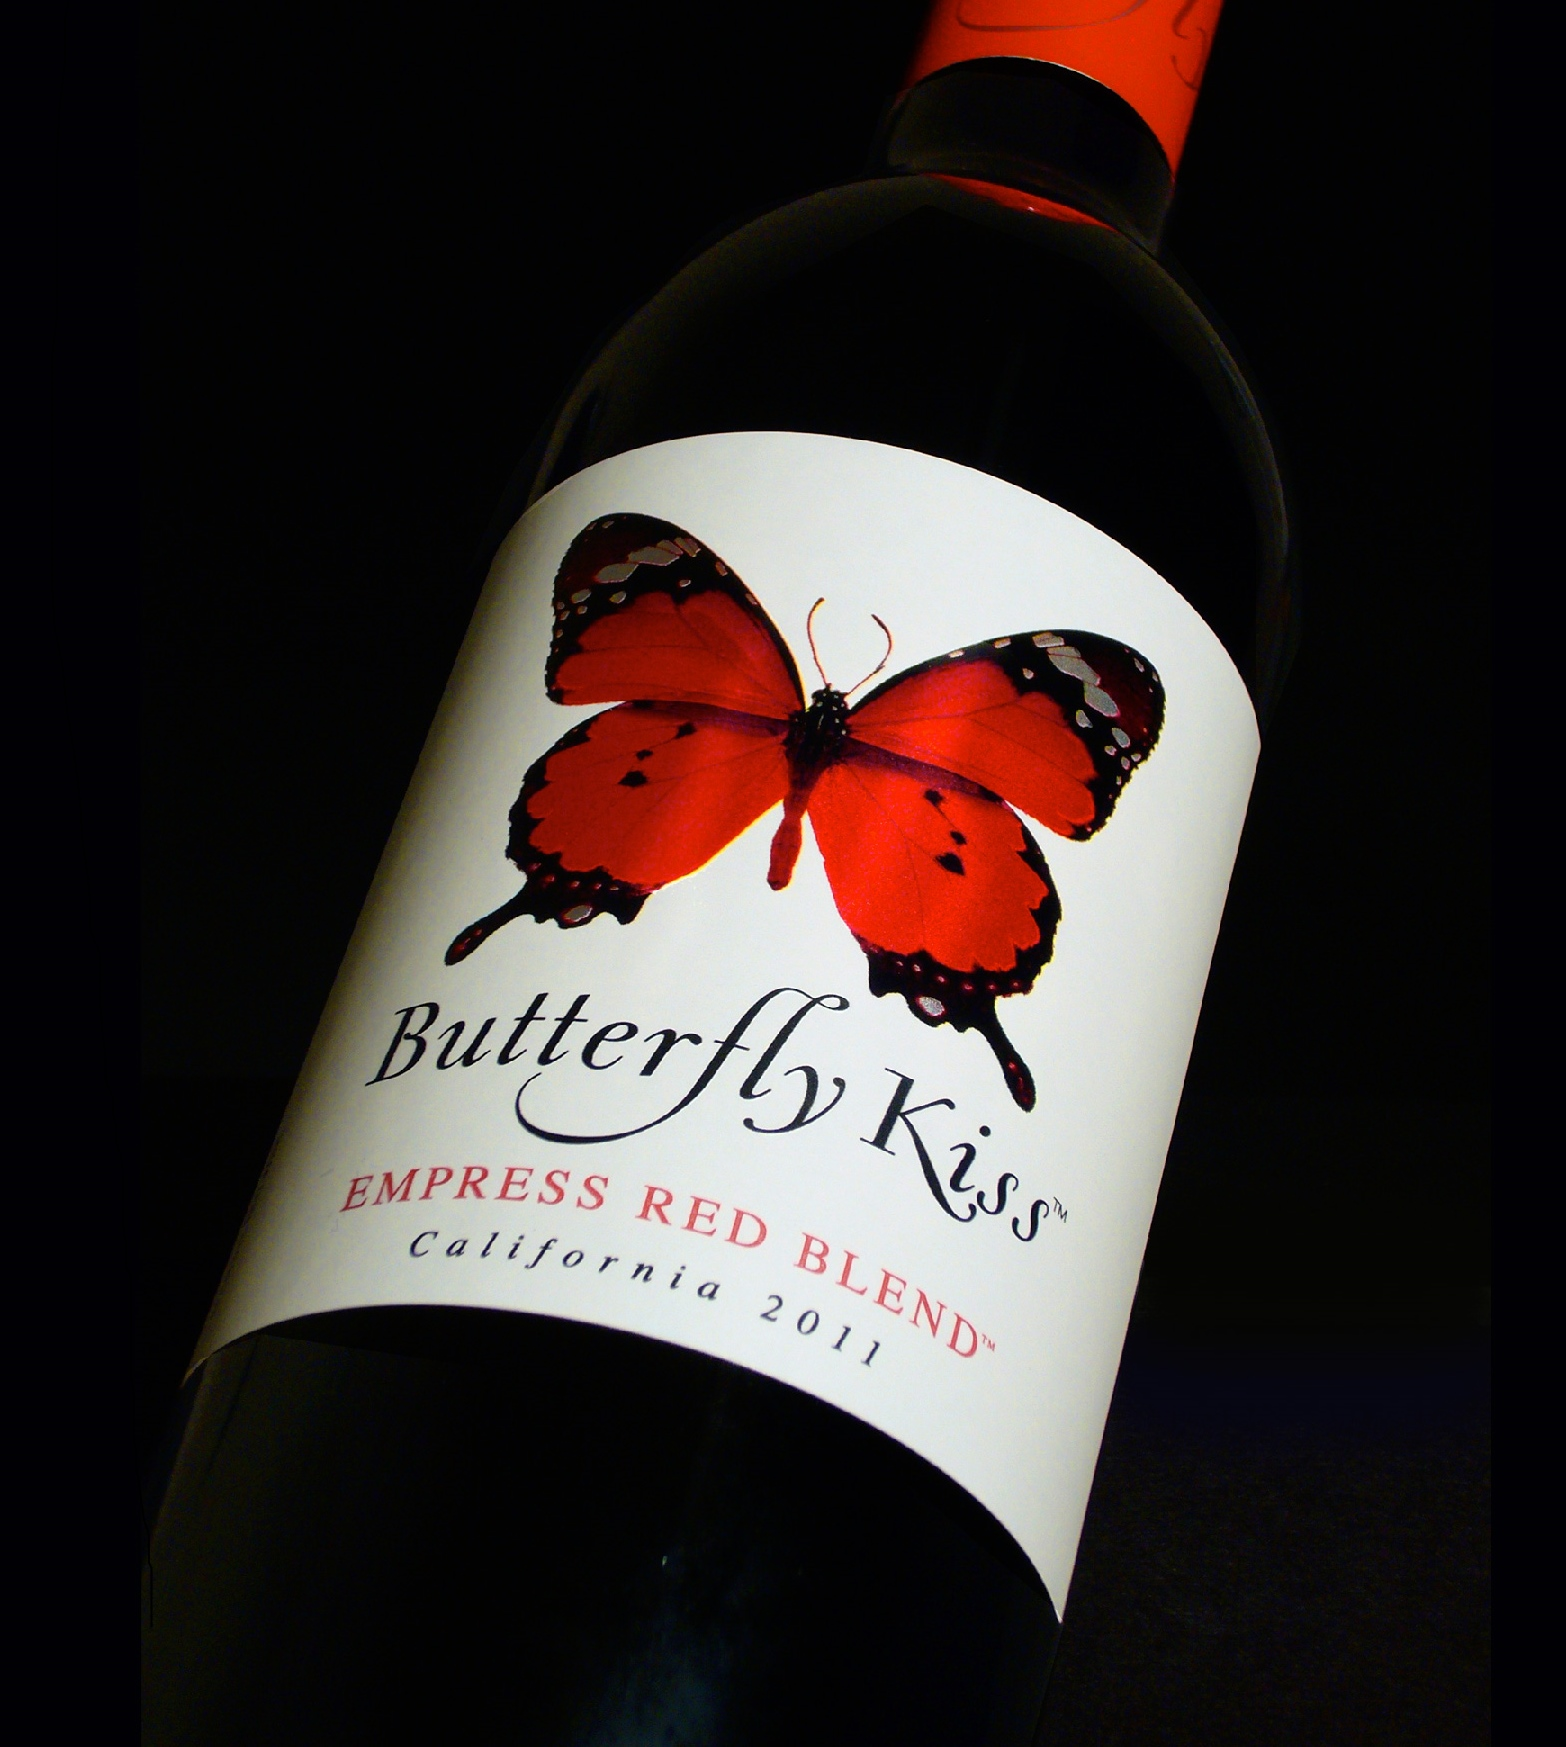 Tags: Brescome Barton , Butterfly Kiss Empress Red Blend , Diageo